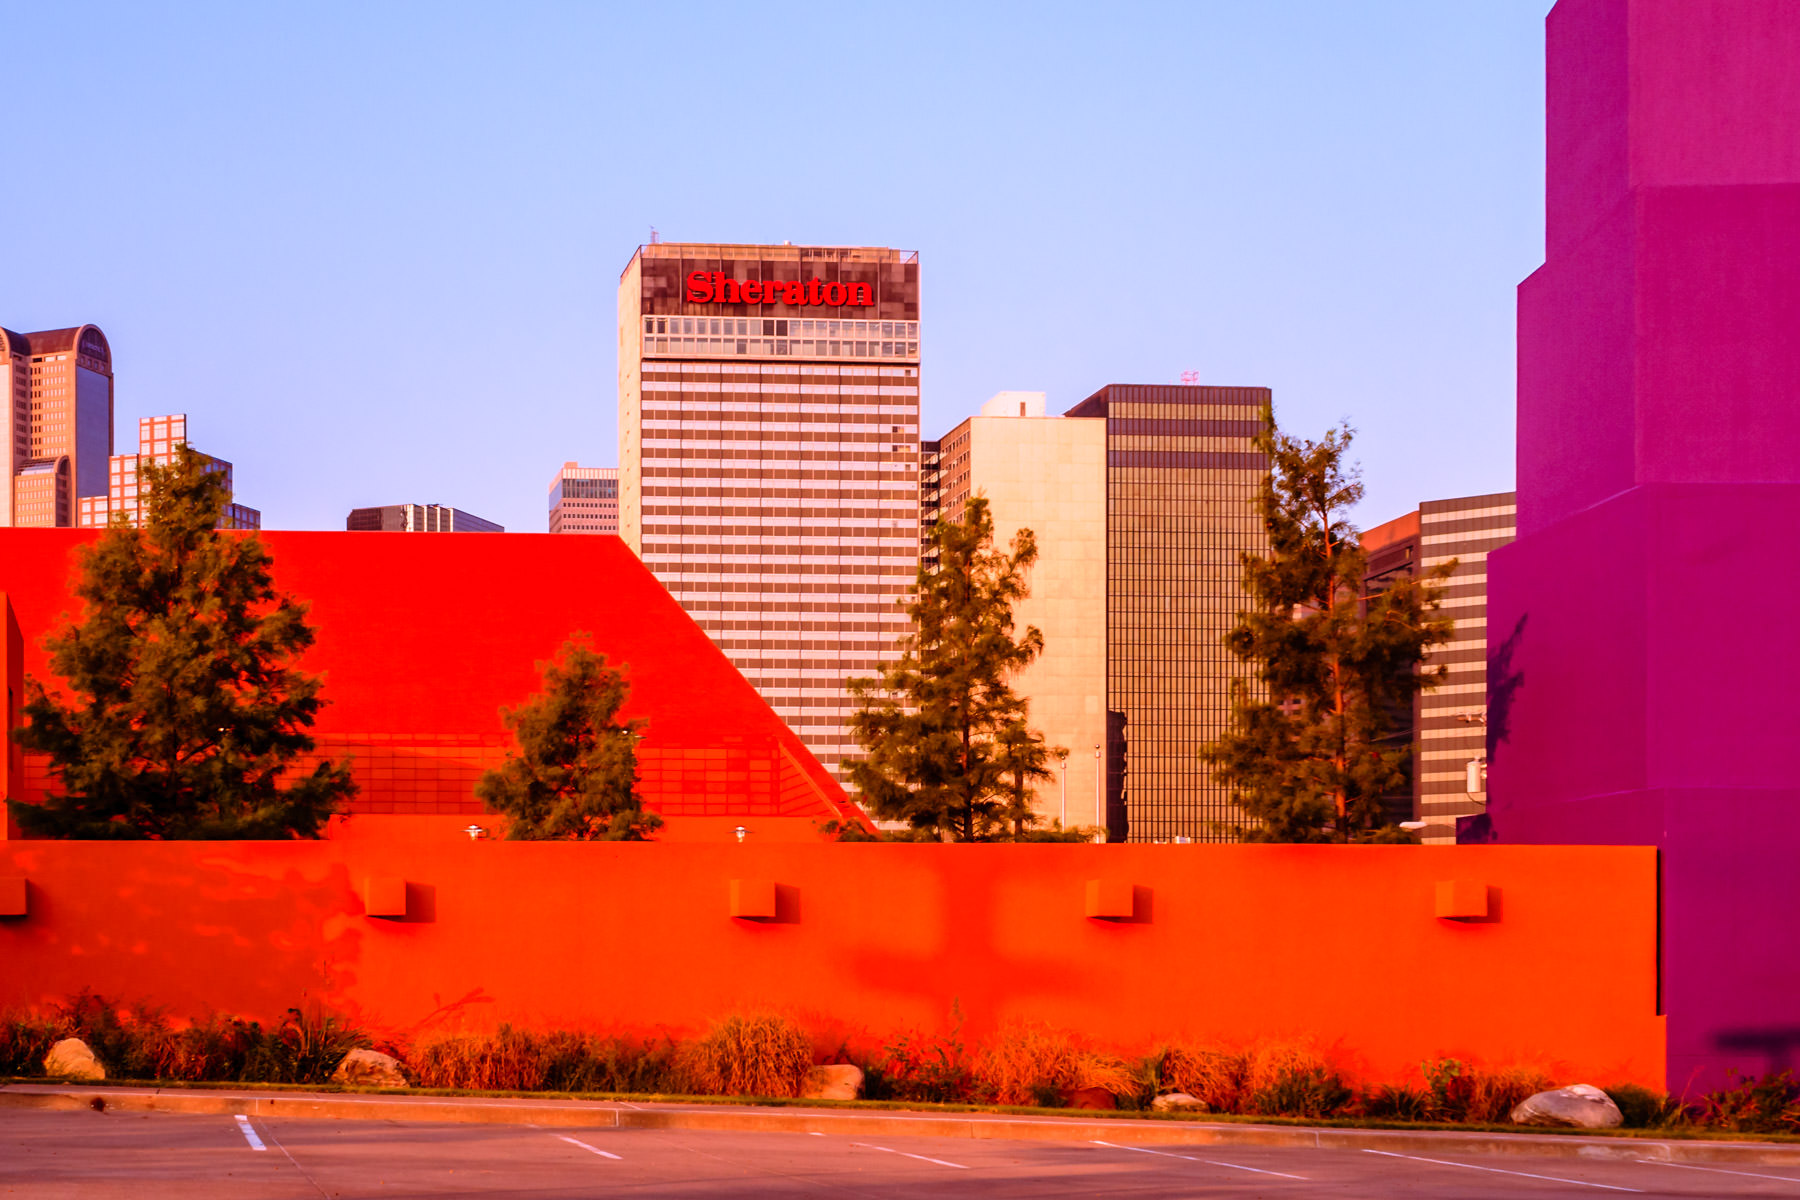 The Downtown Dallas Sheraton Hotel seems to peek over the colorful walls of Deep Ellum's Latino Cultural Center.